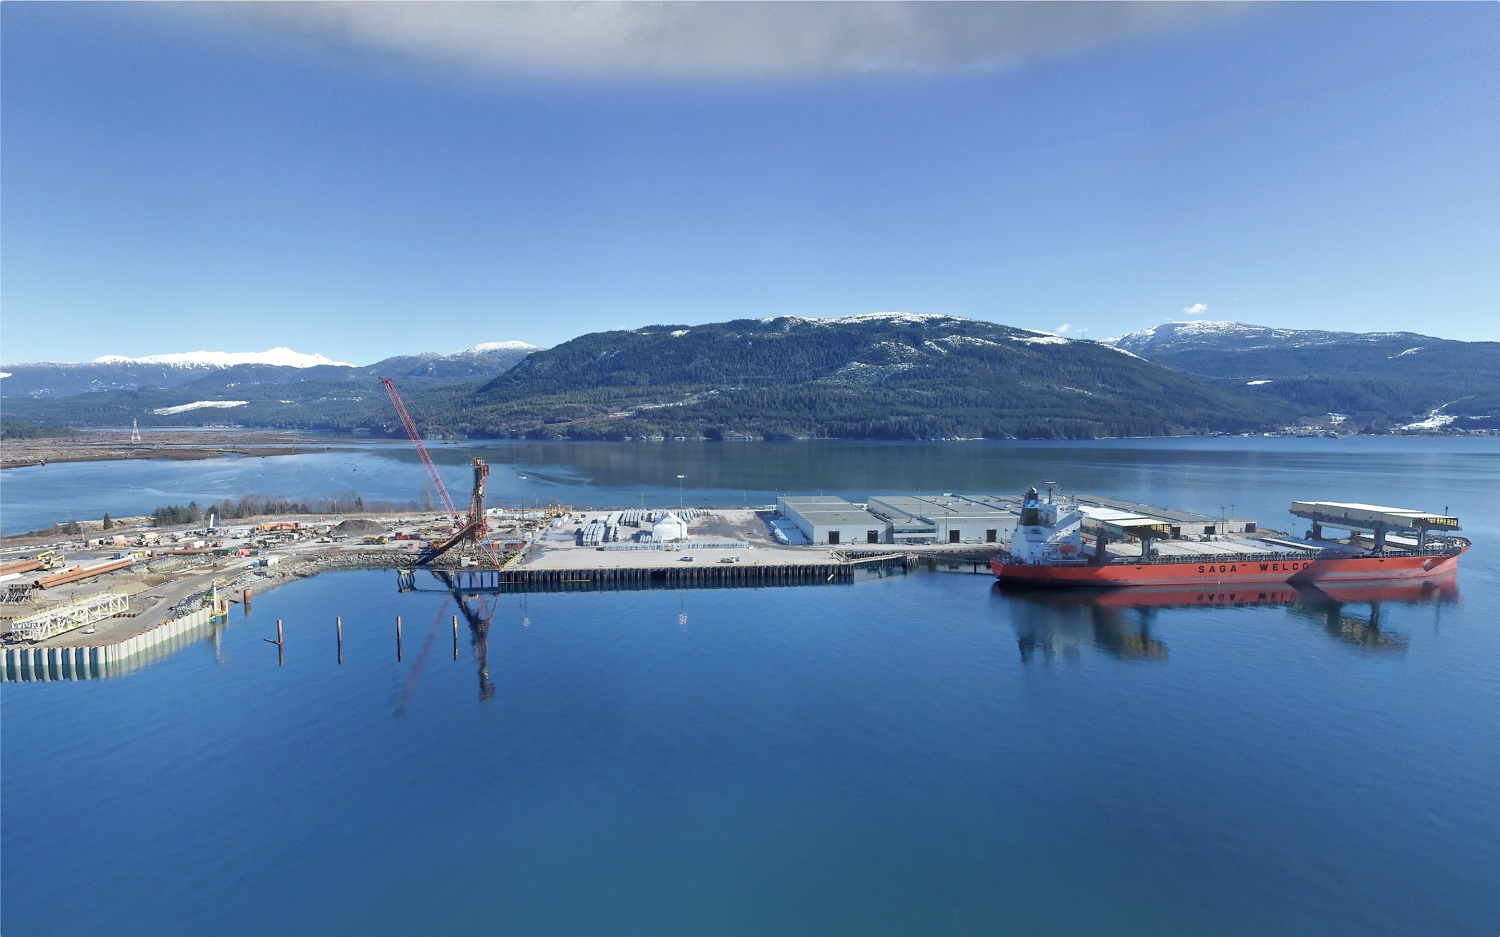 Check out a few new construction photos from March 2021, including: the marine t...